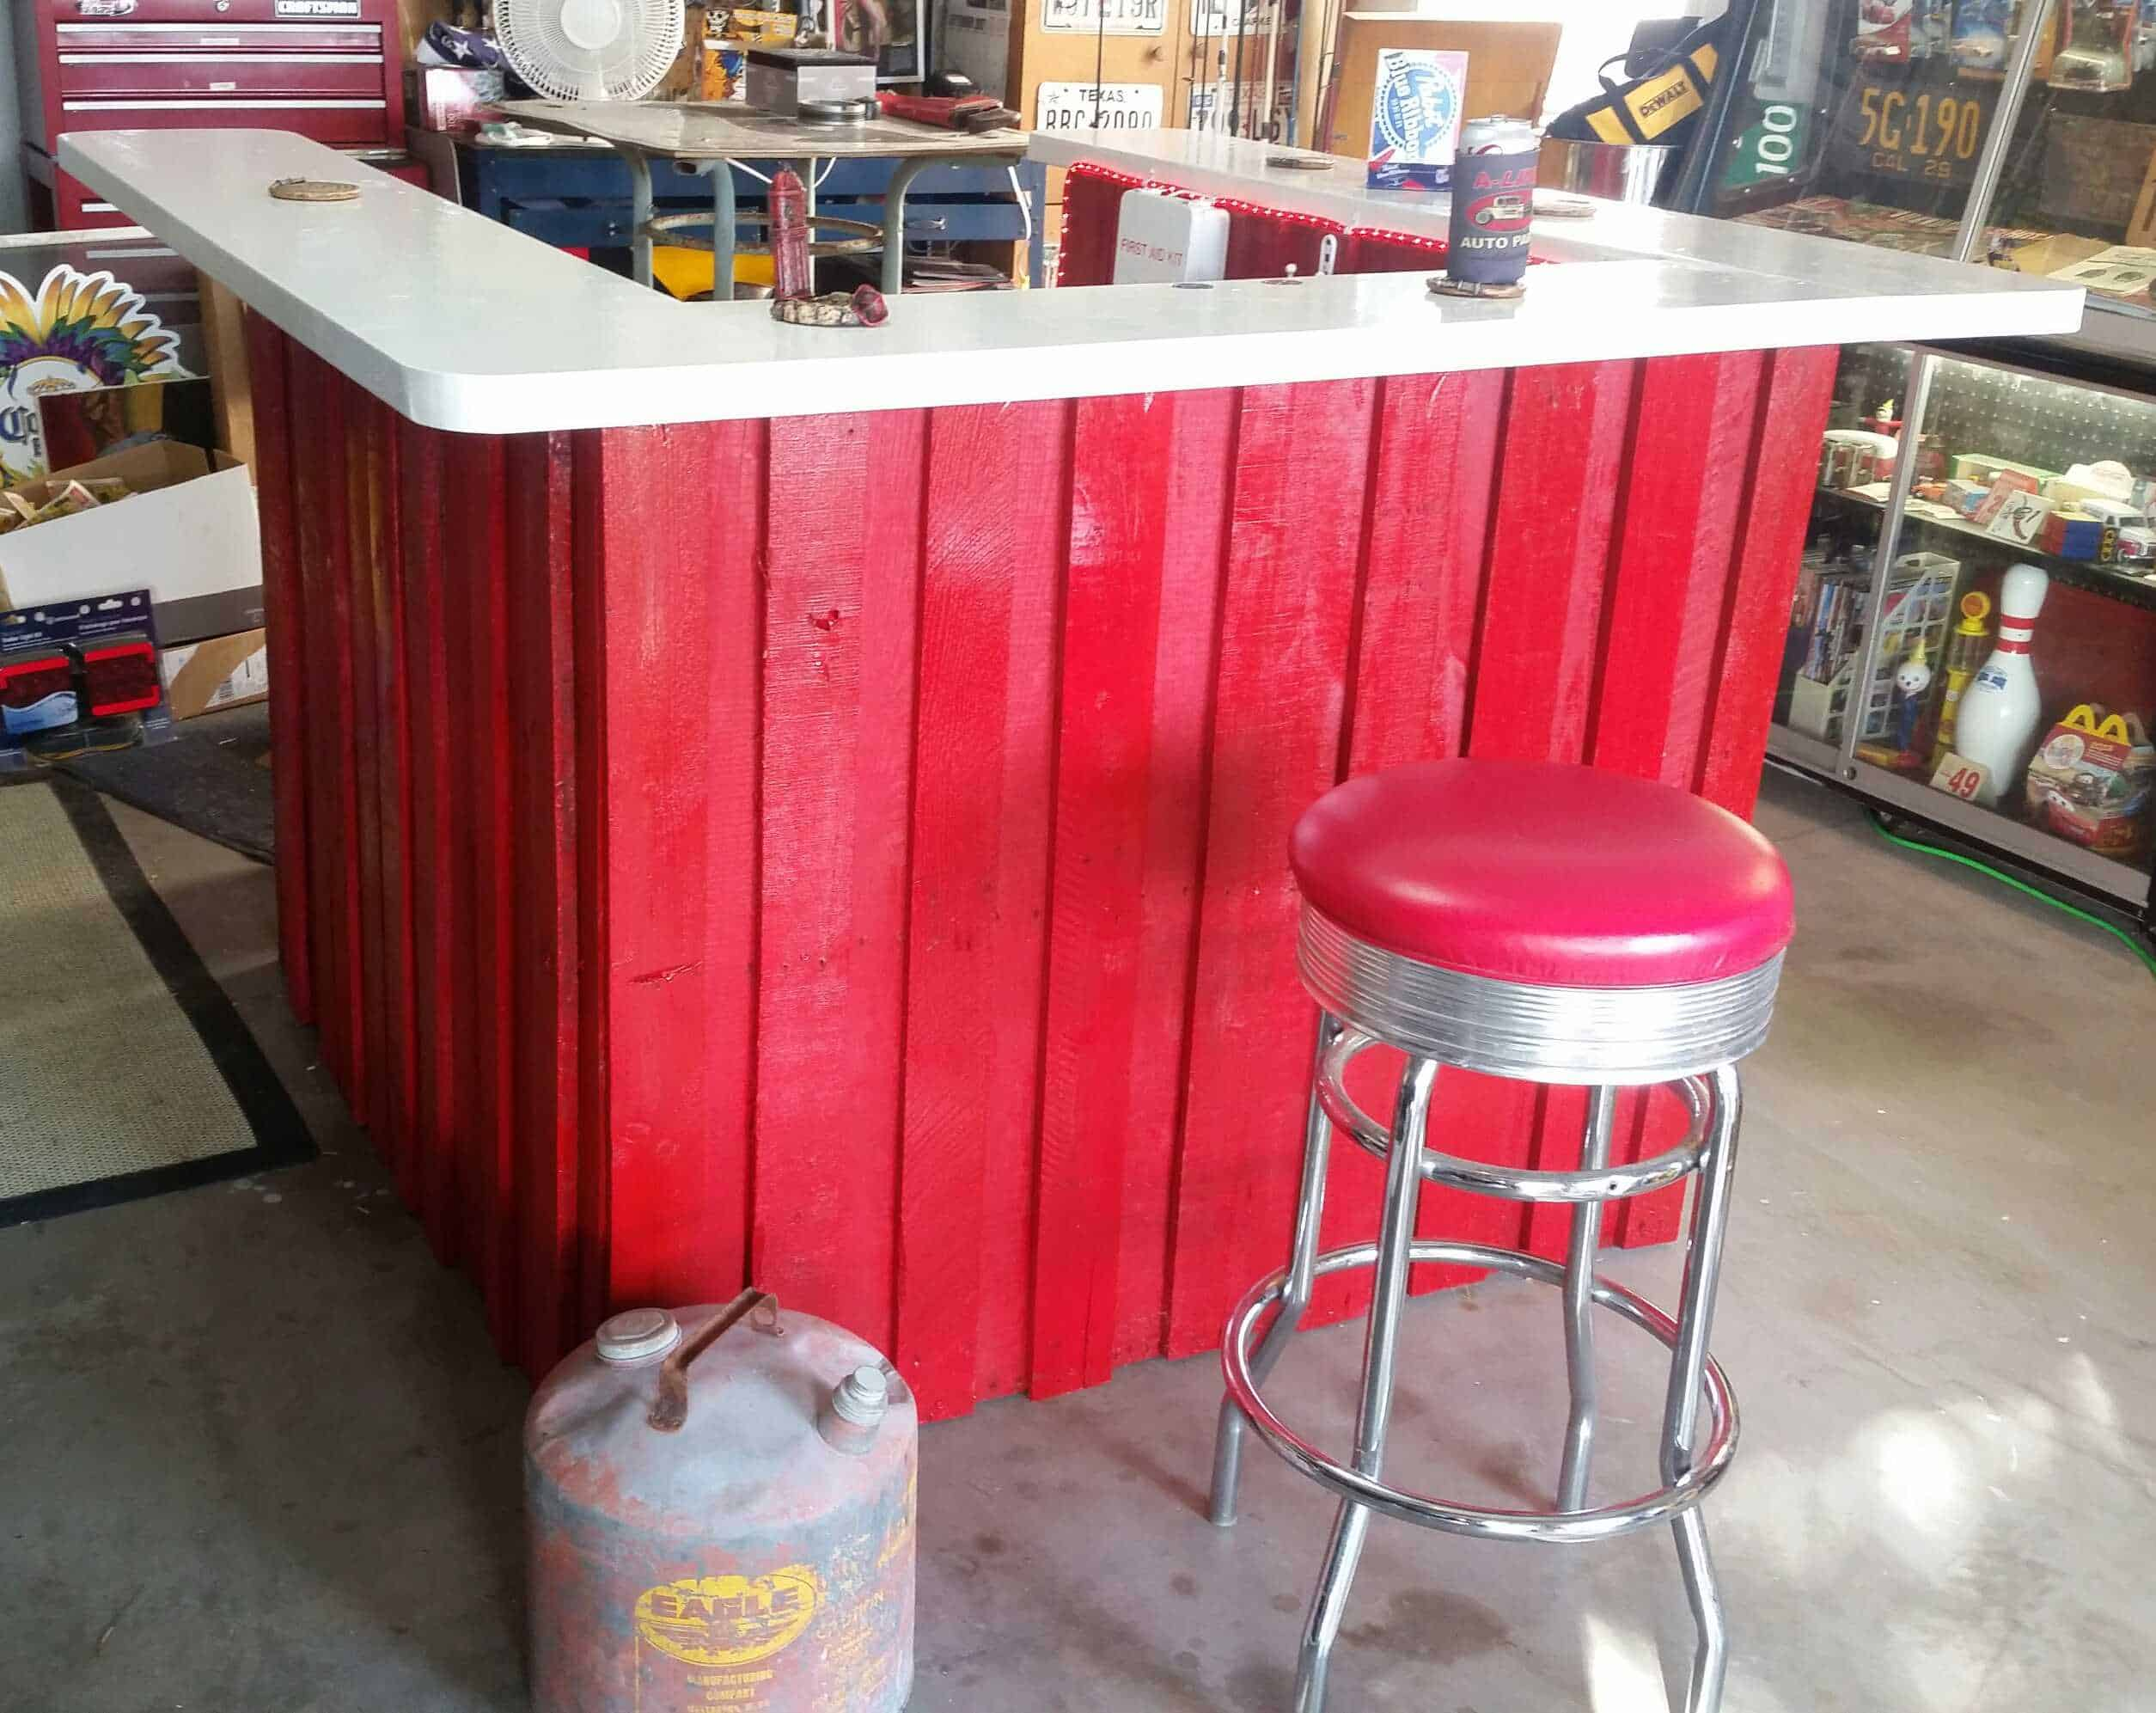 Firefighter Rescue Themed Bbq Bar 1001 Pallets